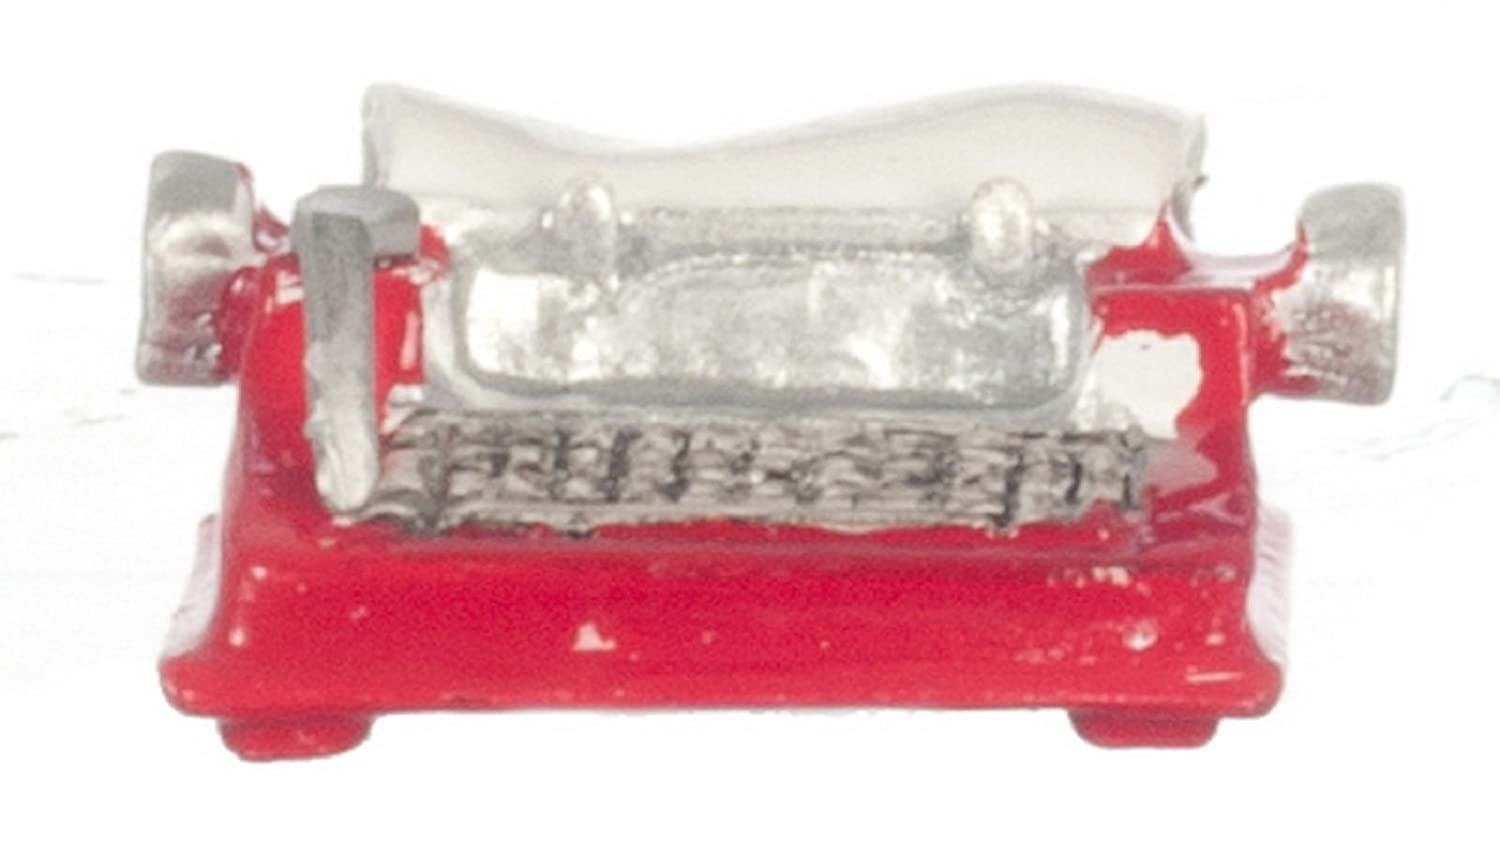 Dollhouse Miniature 1:12 Scale RED Typewriter #G8579 AZTEC IMPORTS